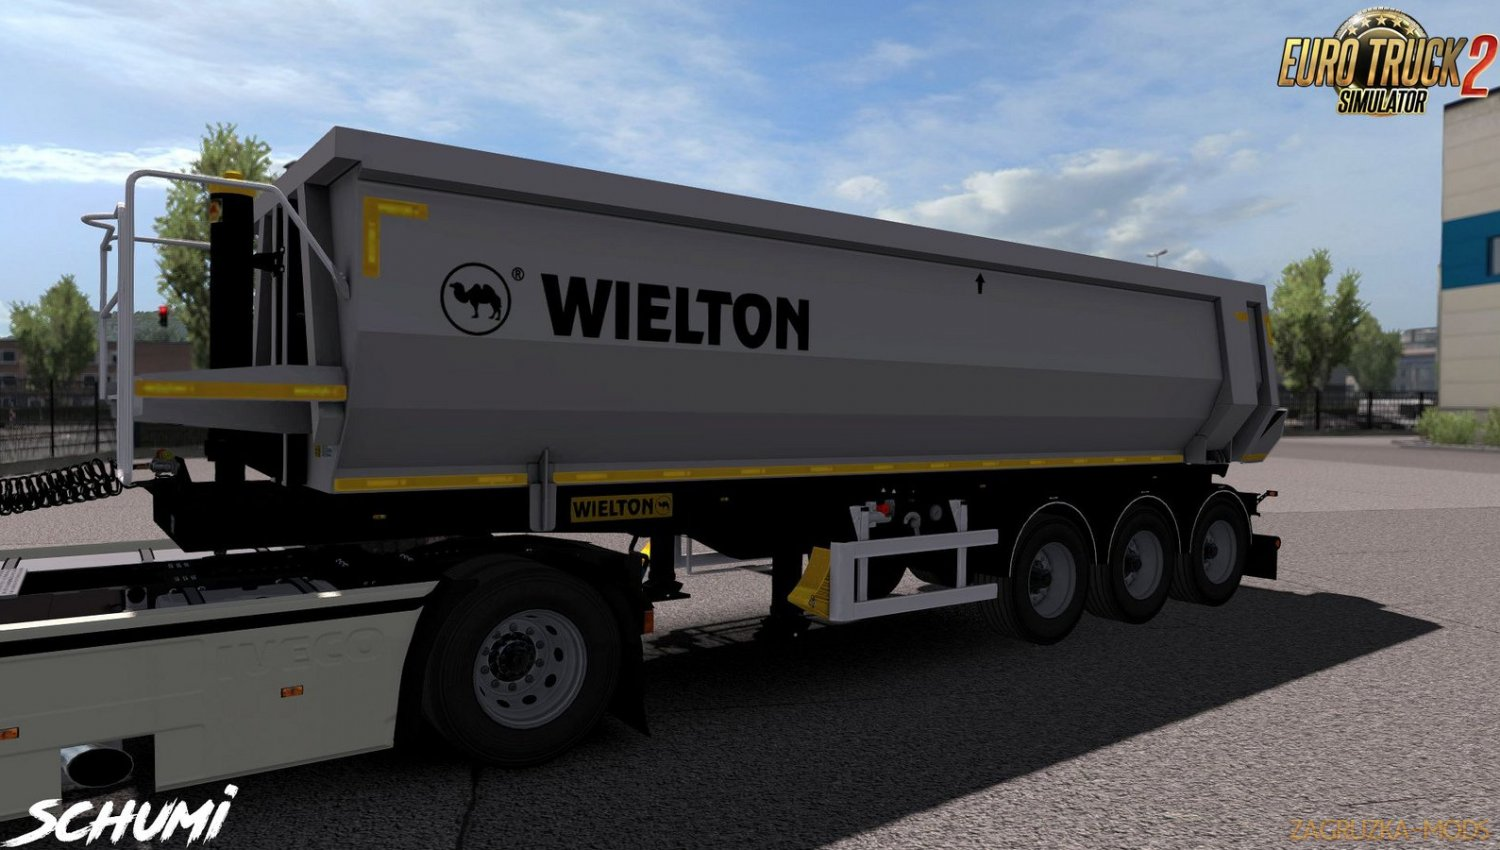 Wielton Trailer Pack v1.0 by Schumi [1.33.x-1.34.x]